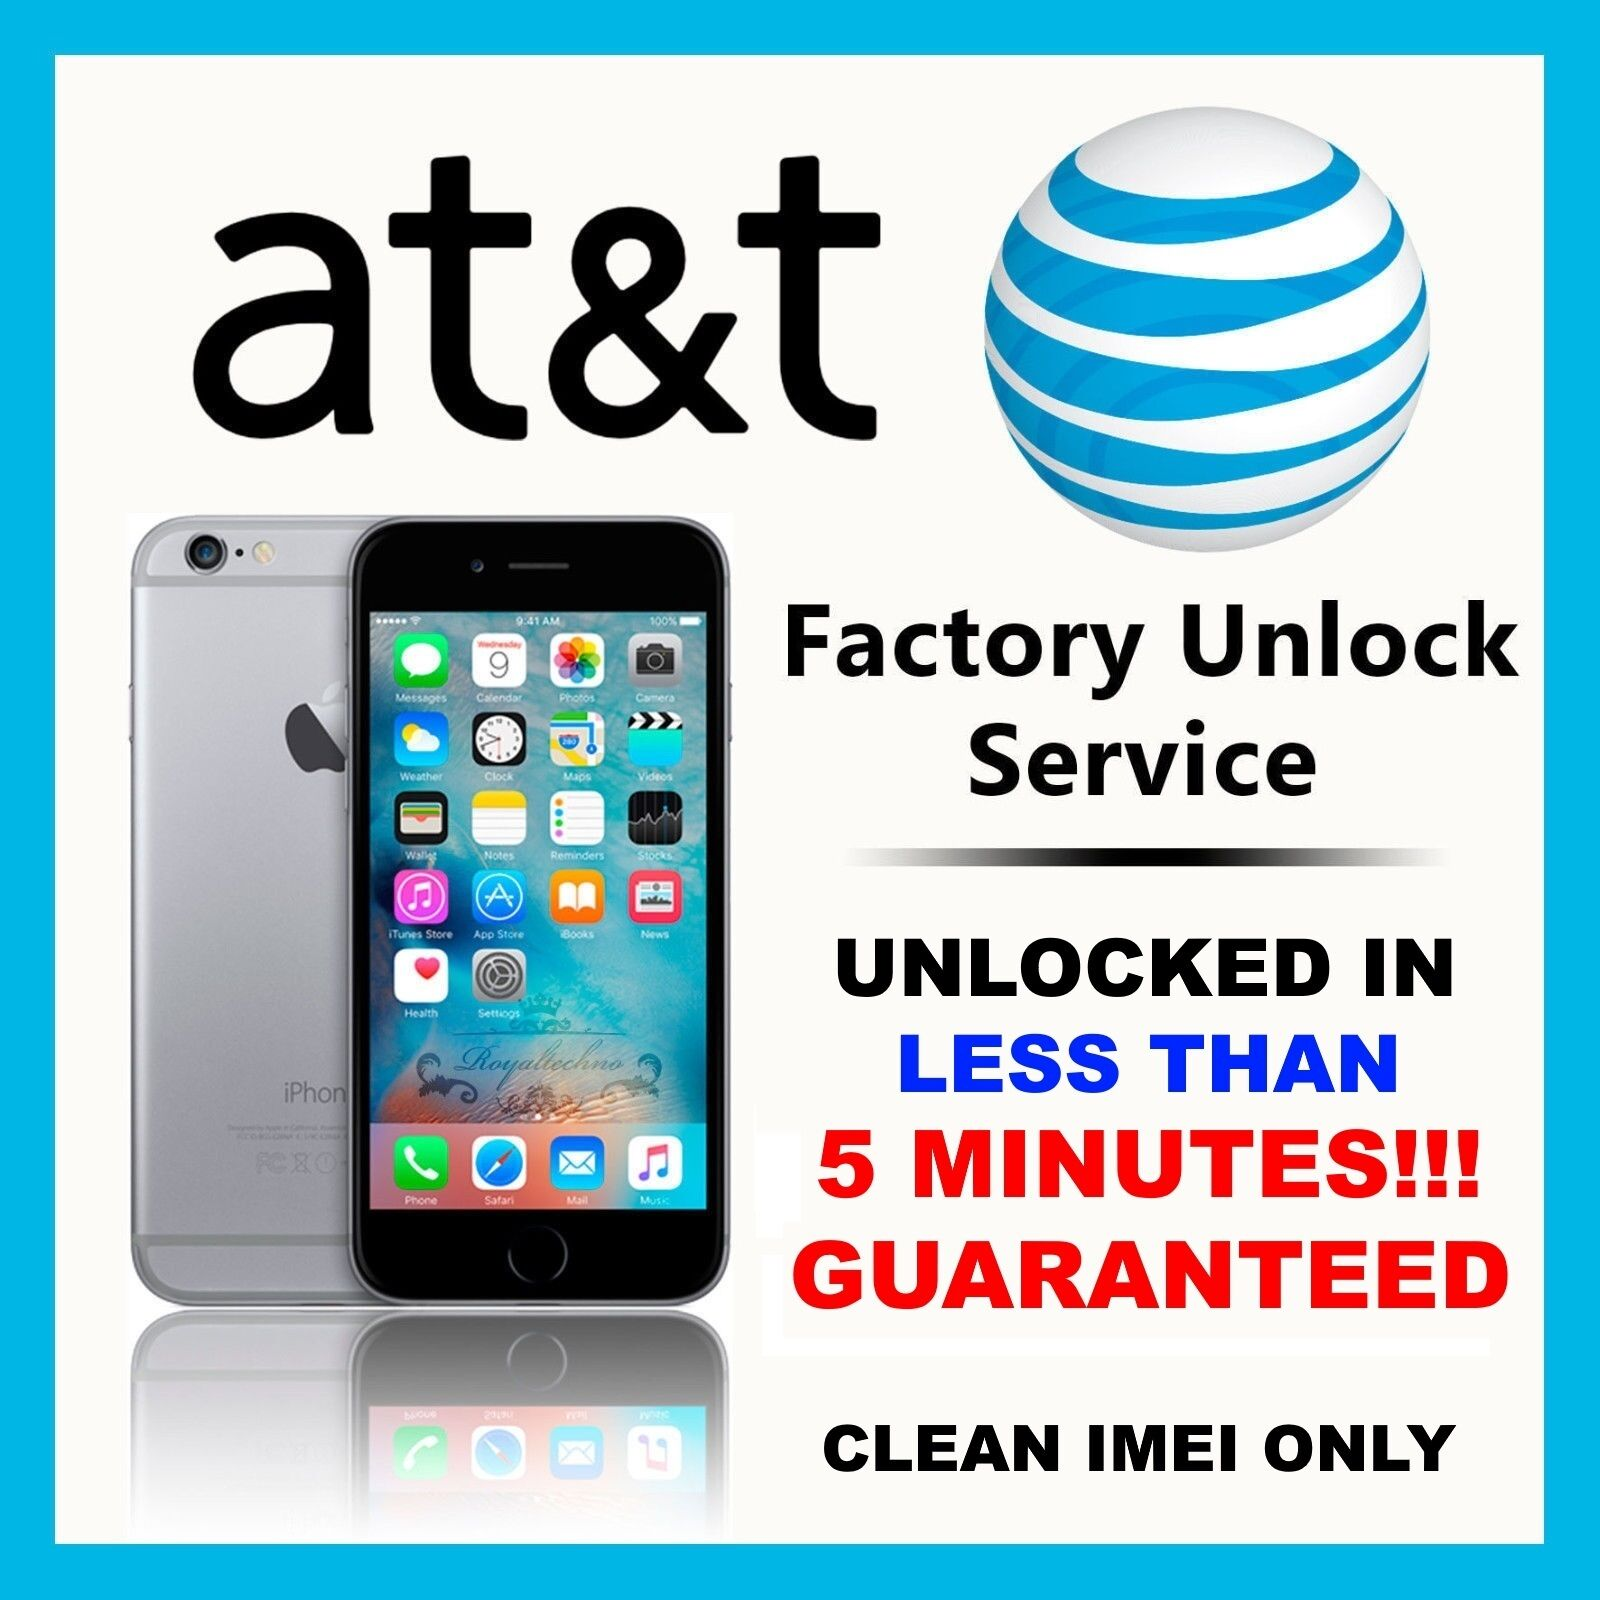 Att unlock device phone number - Picture 1 Of 3